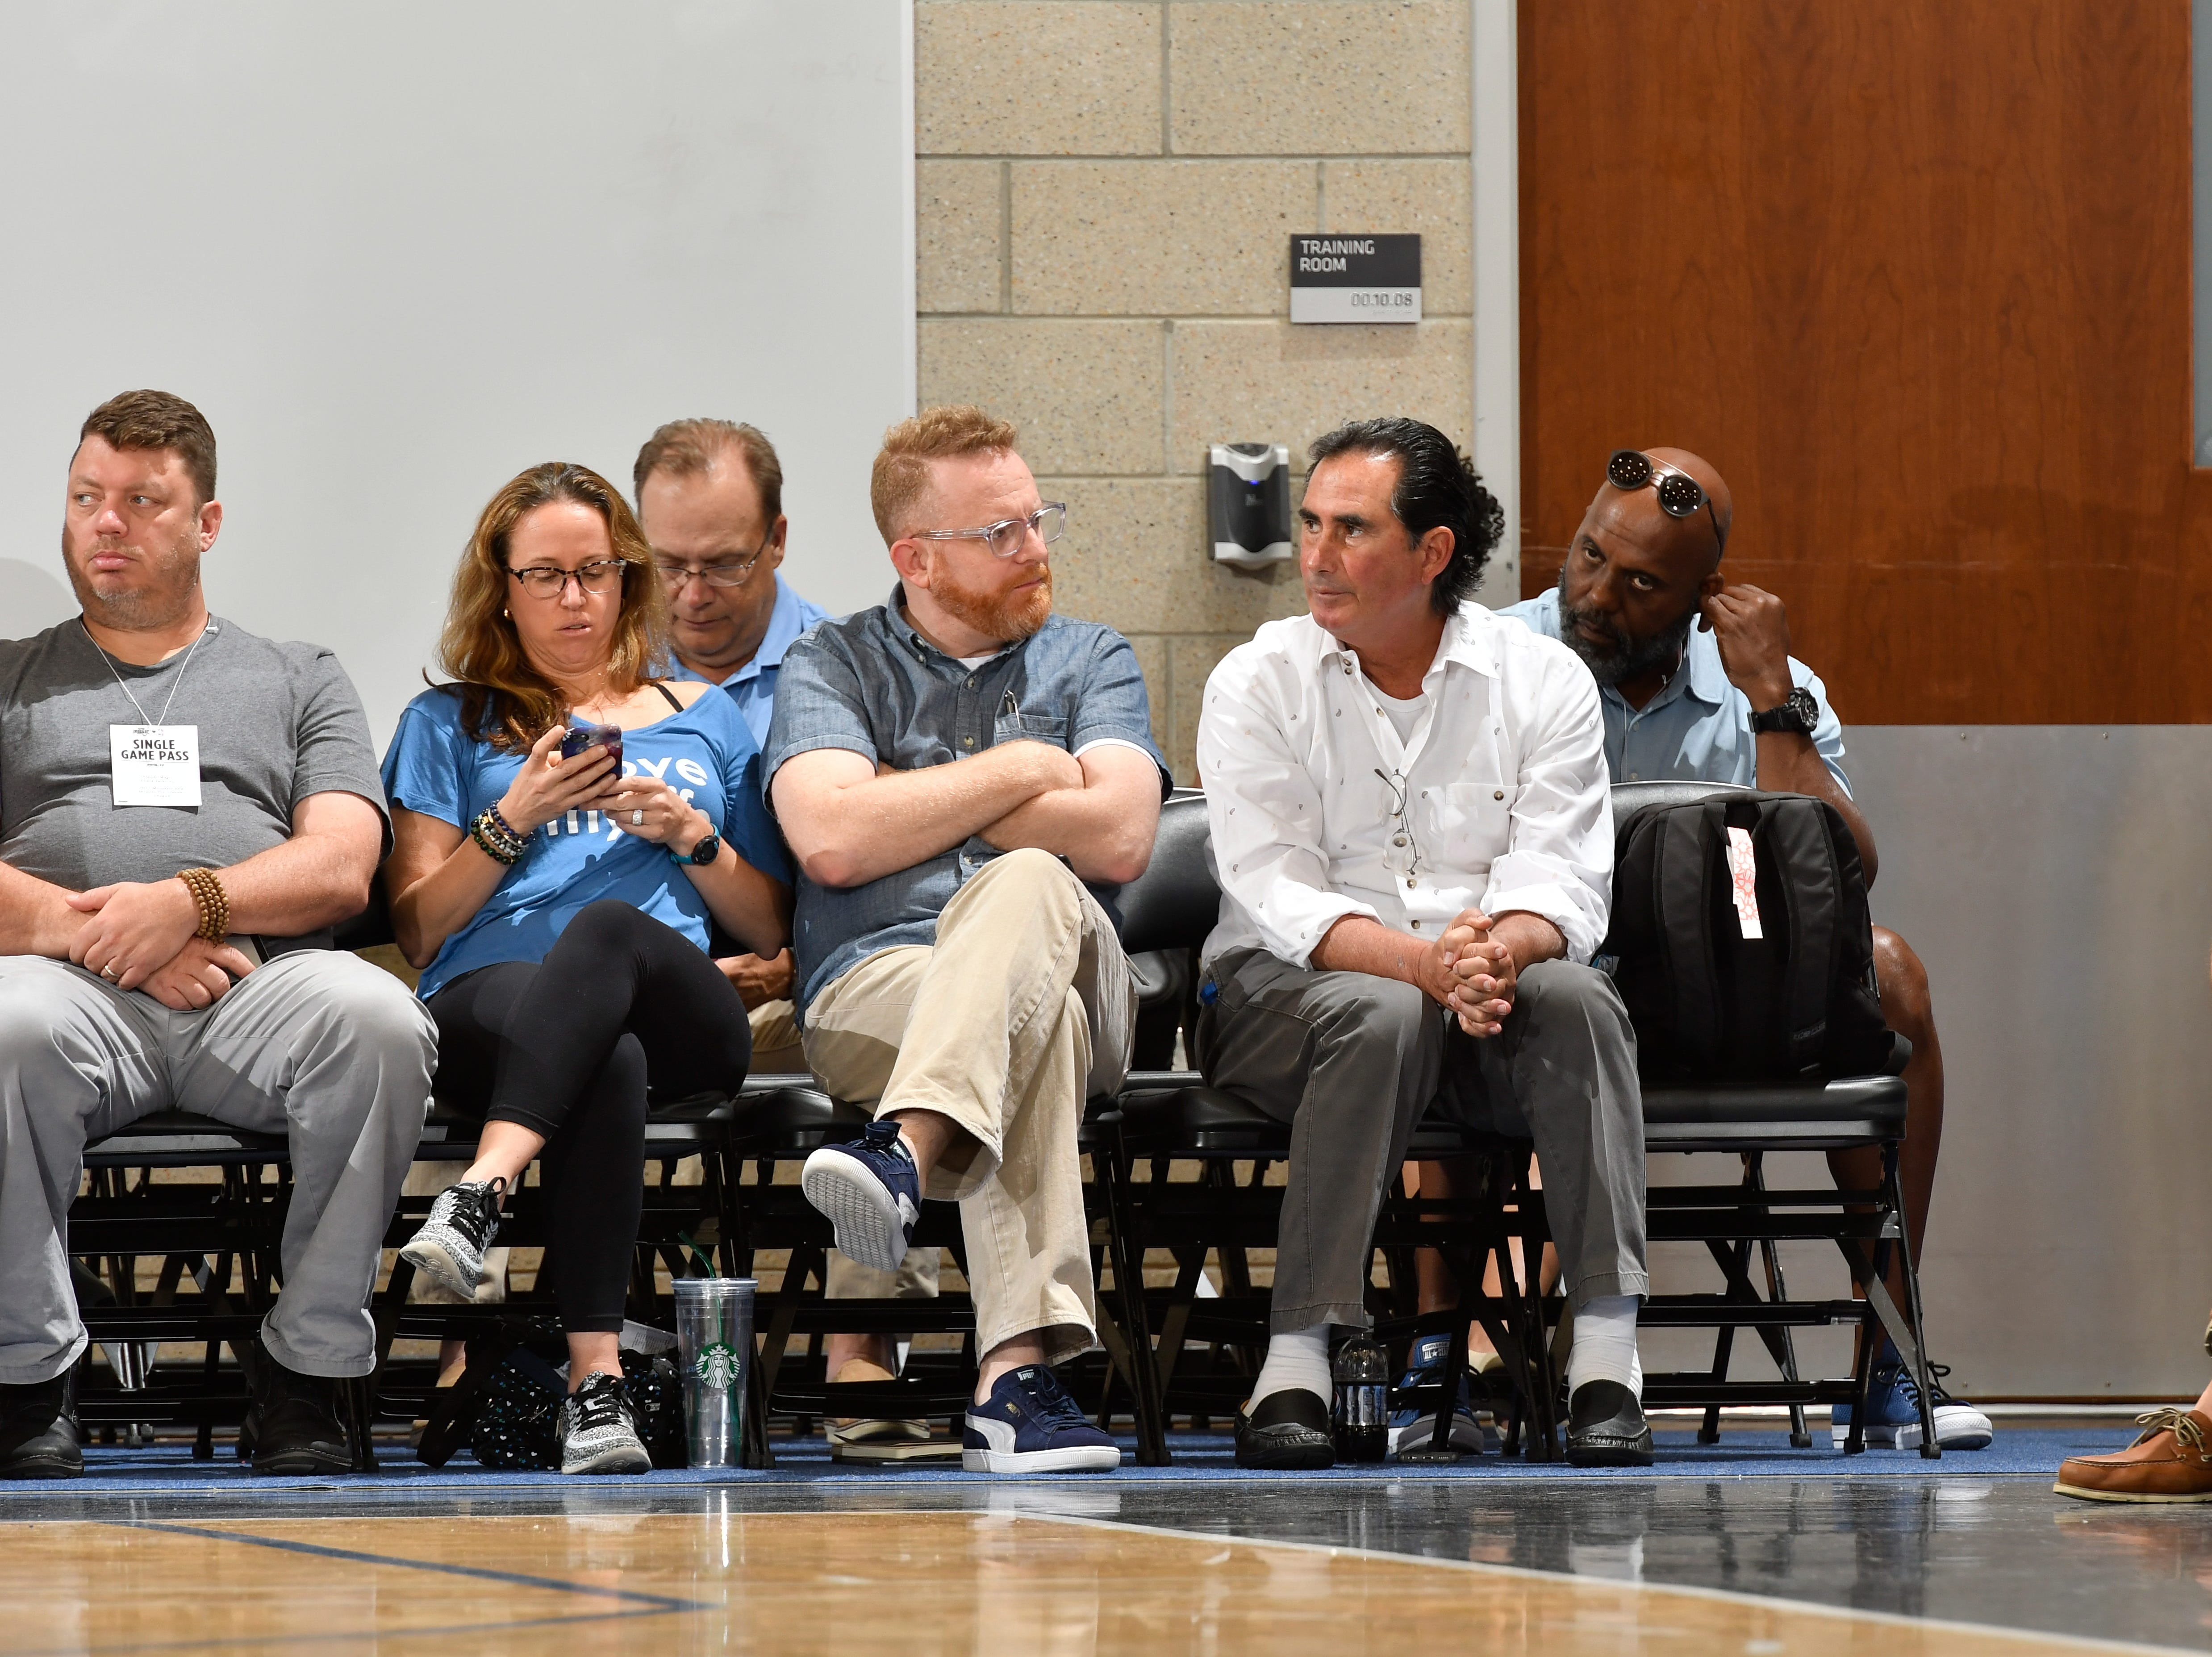 Delone Catholic grad John Gabriel (right, front row) still works Pro Summer League games like this on in July of 2017 in Orlando. Gabriel was the first general manager of the Orlando Magic. He came back to the Magic after being diagnosed with Parkinson's disease eight years ago. He's now a special advisor to the team and expert talent judge.